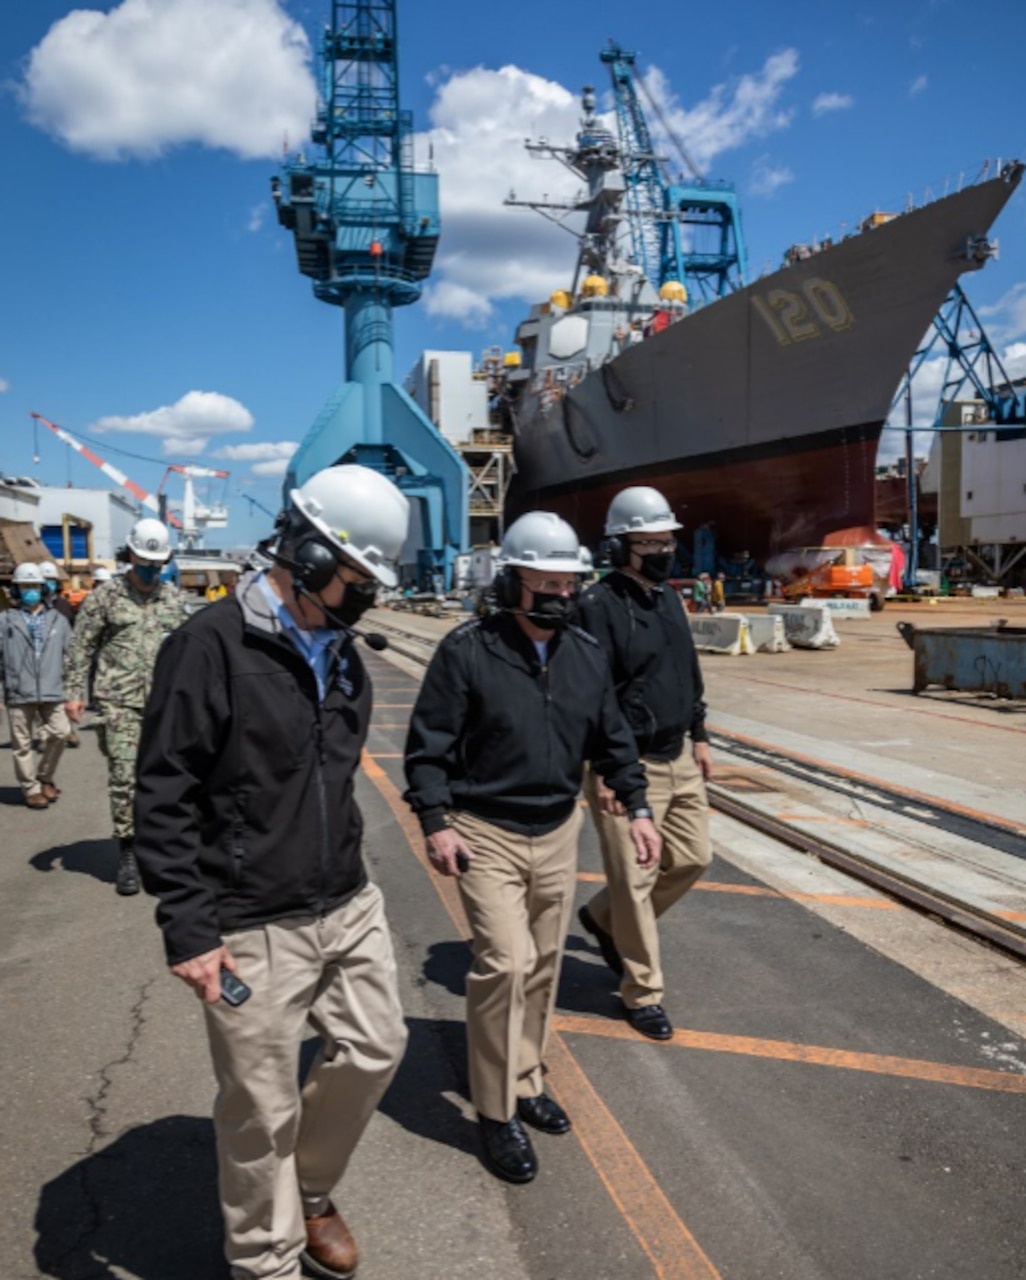 BATH, Maine (May. 10, 2021) - Chief of Naval Operations (CNO) Adm. Mike Gilday tours Bath Iron Works with Sen. Susan Collins and Sen. Angus King. During the visit, CNO also met with Sailors aboard USS Daniel Inouye (DDG 118) and USS Lyndon B. Johnson (DDG 1002). (Photo courtesy of Bath Iron Works/Released)